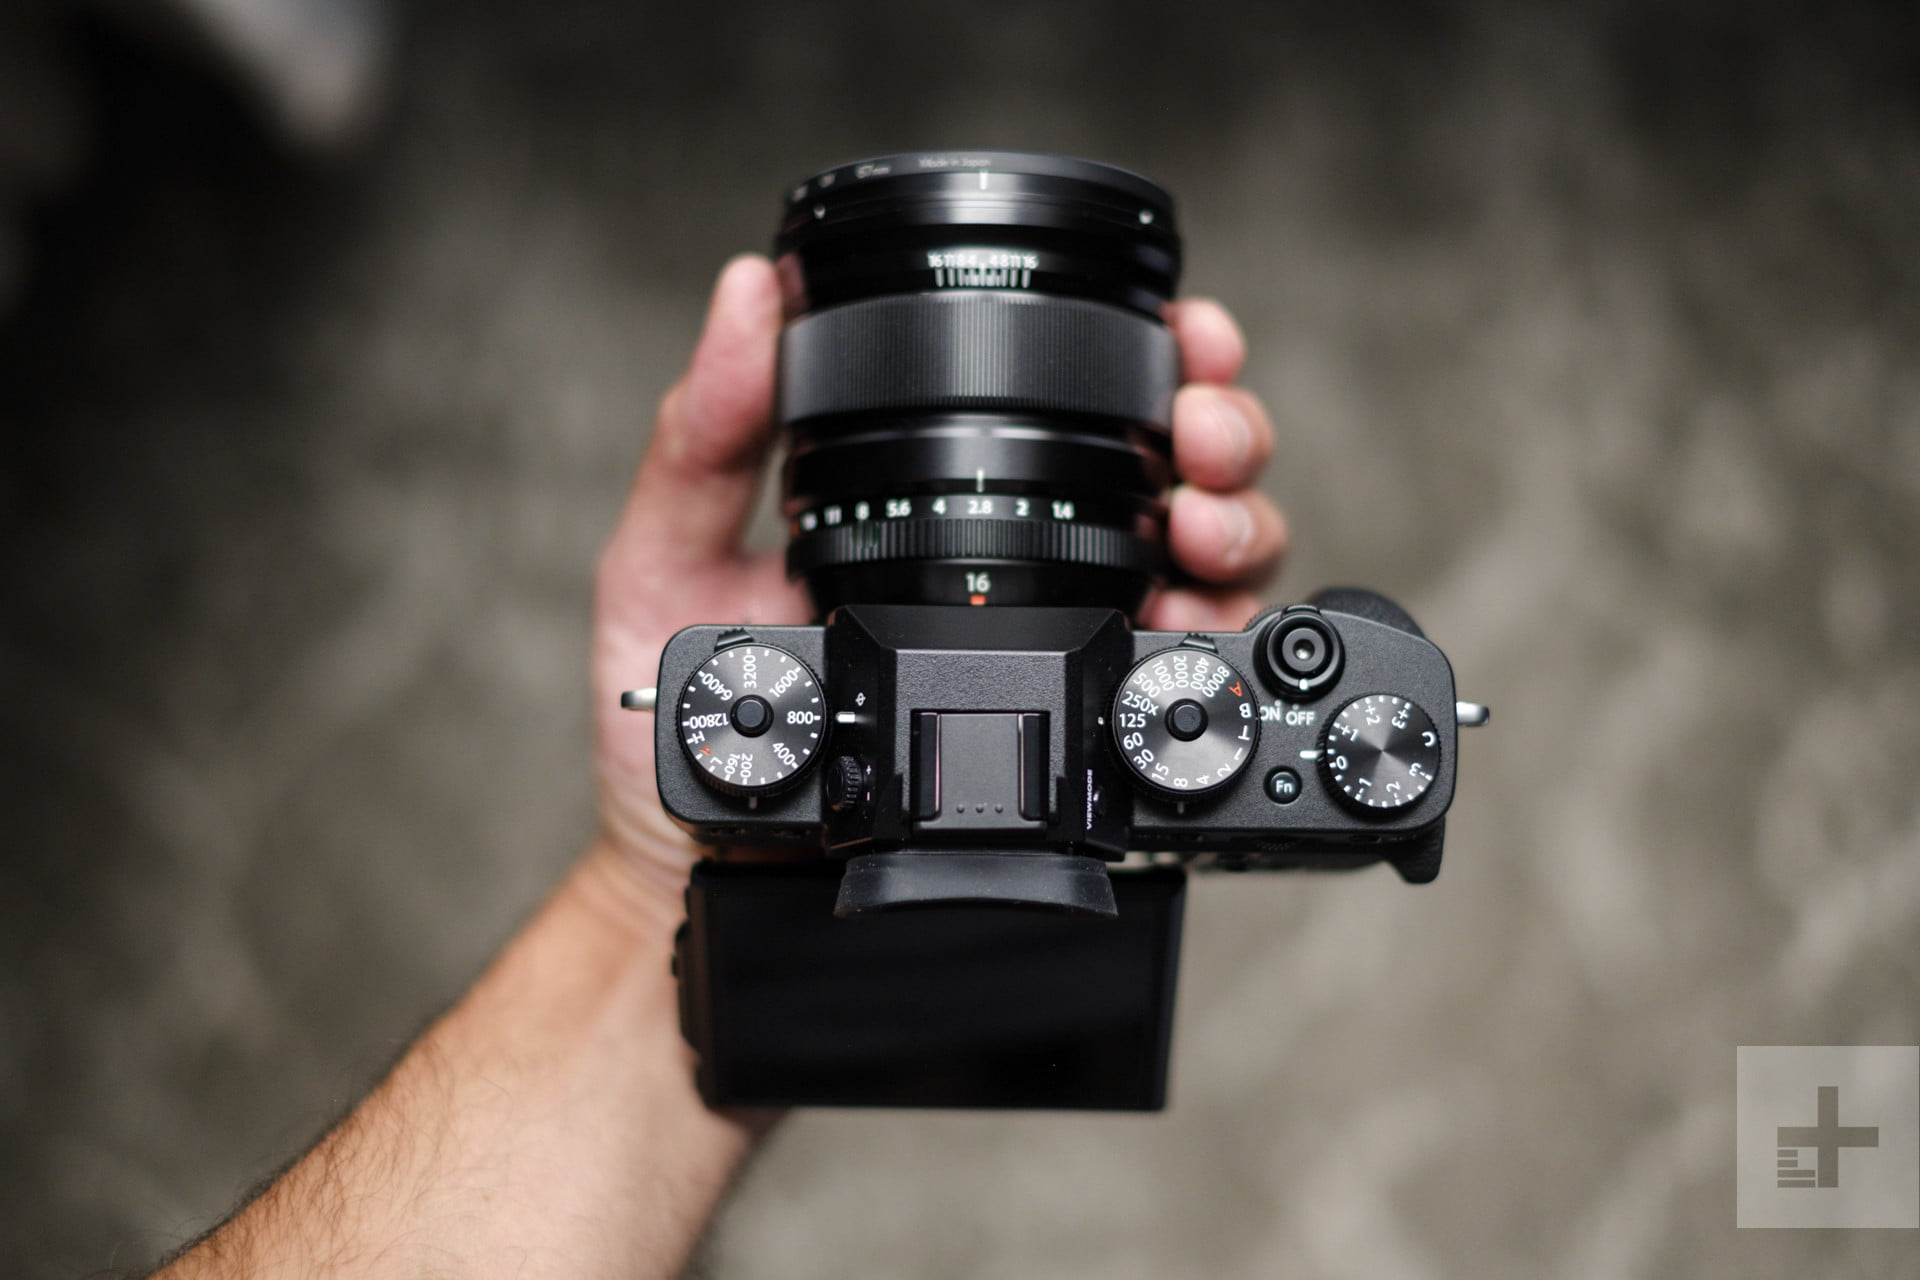 fujifilm-x-t3-review-013-1920x1280